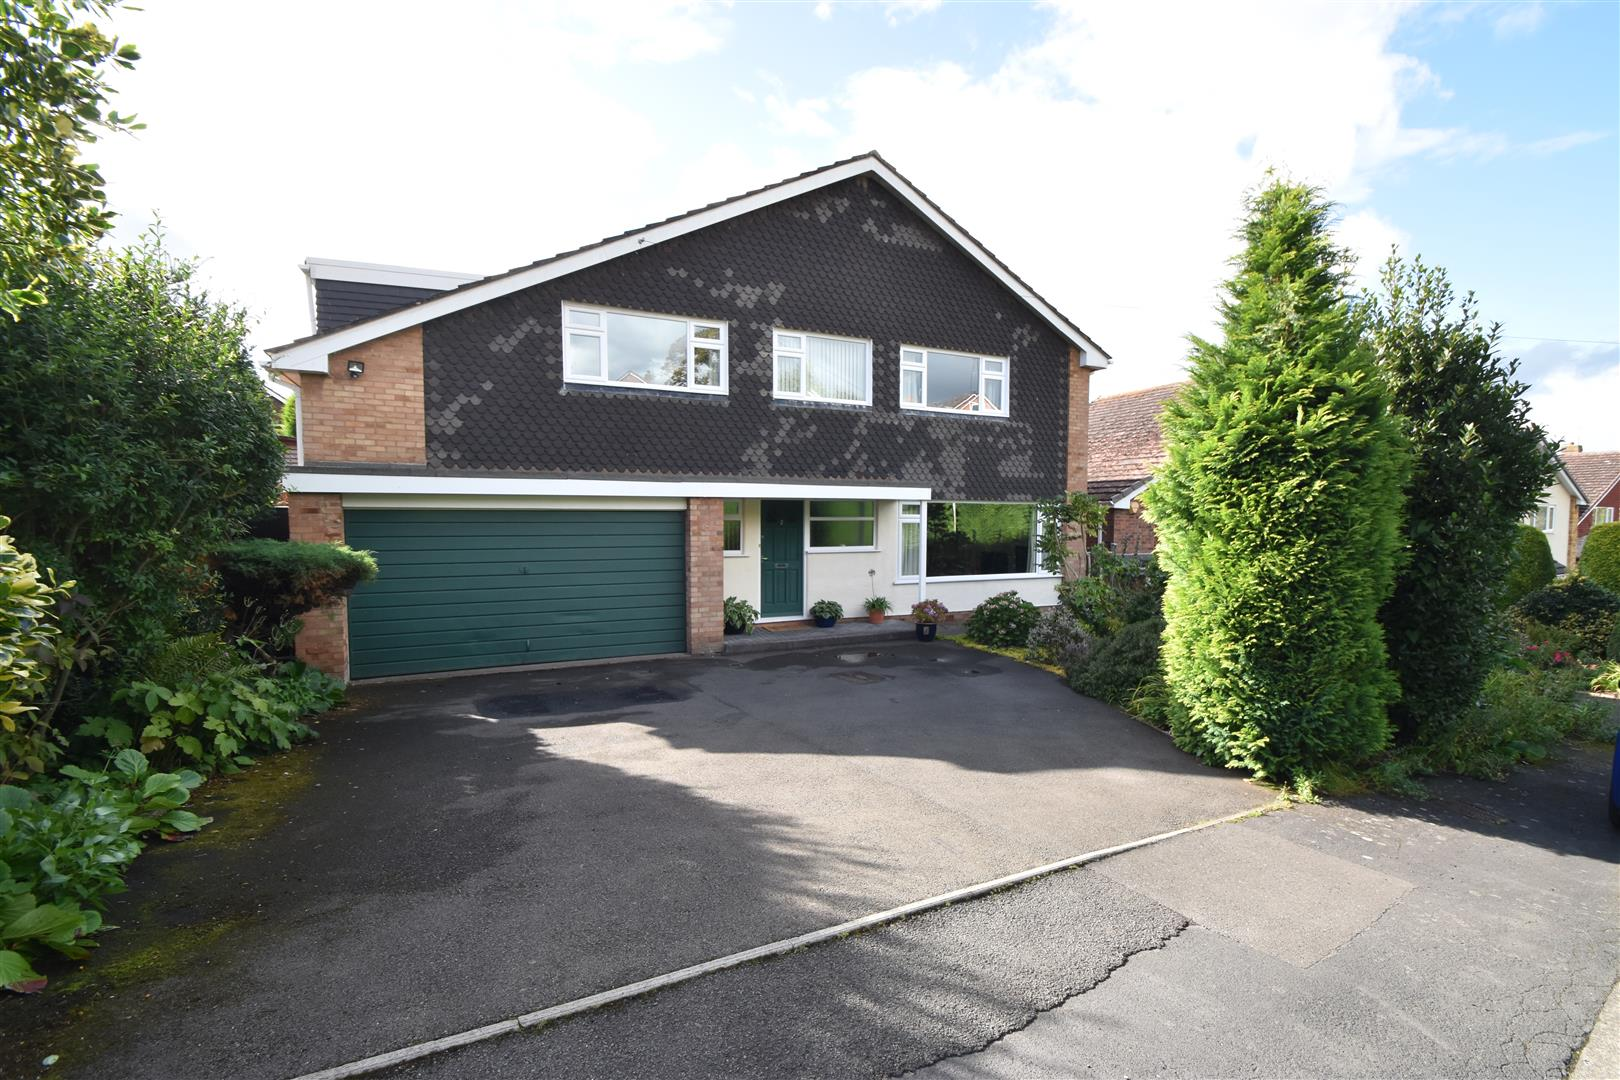 4 Bedrooms Detached House for sale in Rye Close, Droitwich